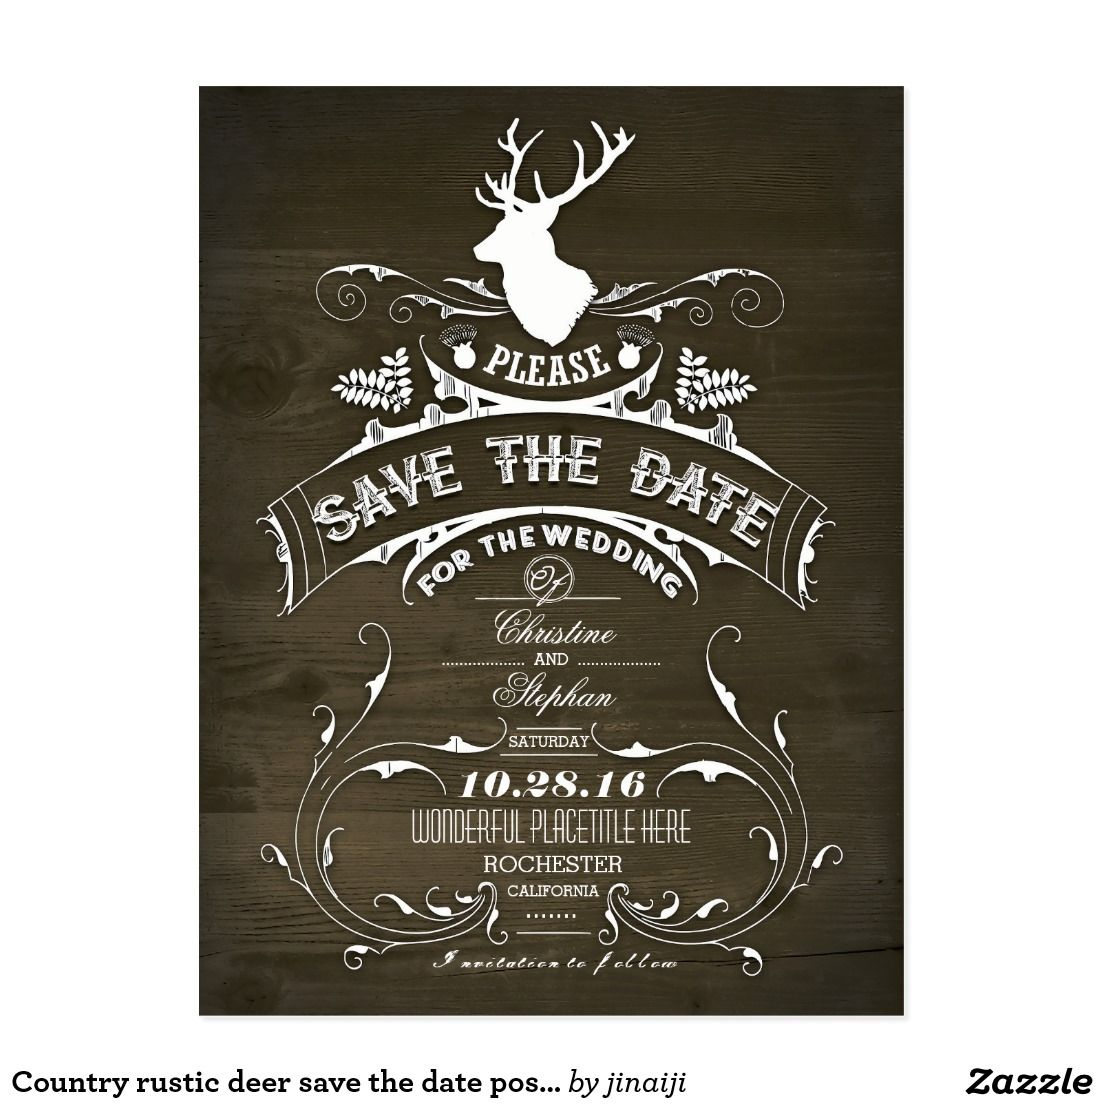 Country rustic deer save the date postcard